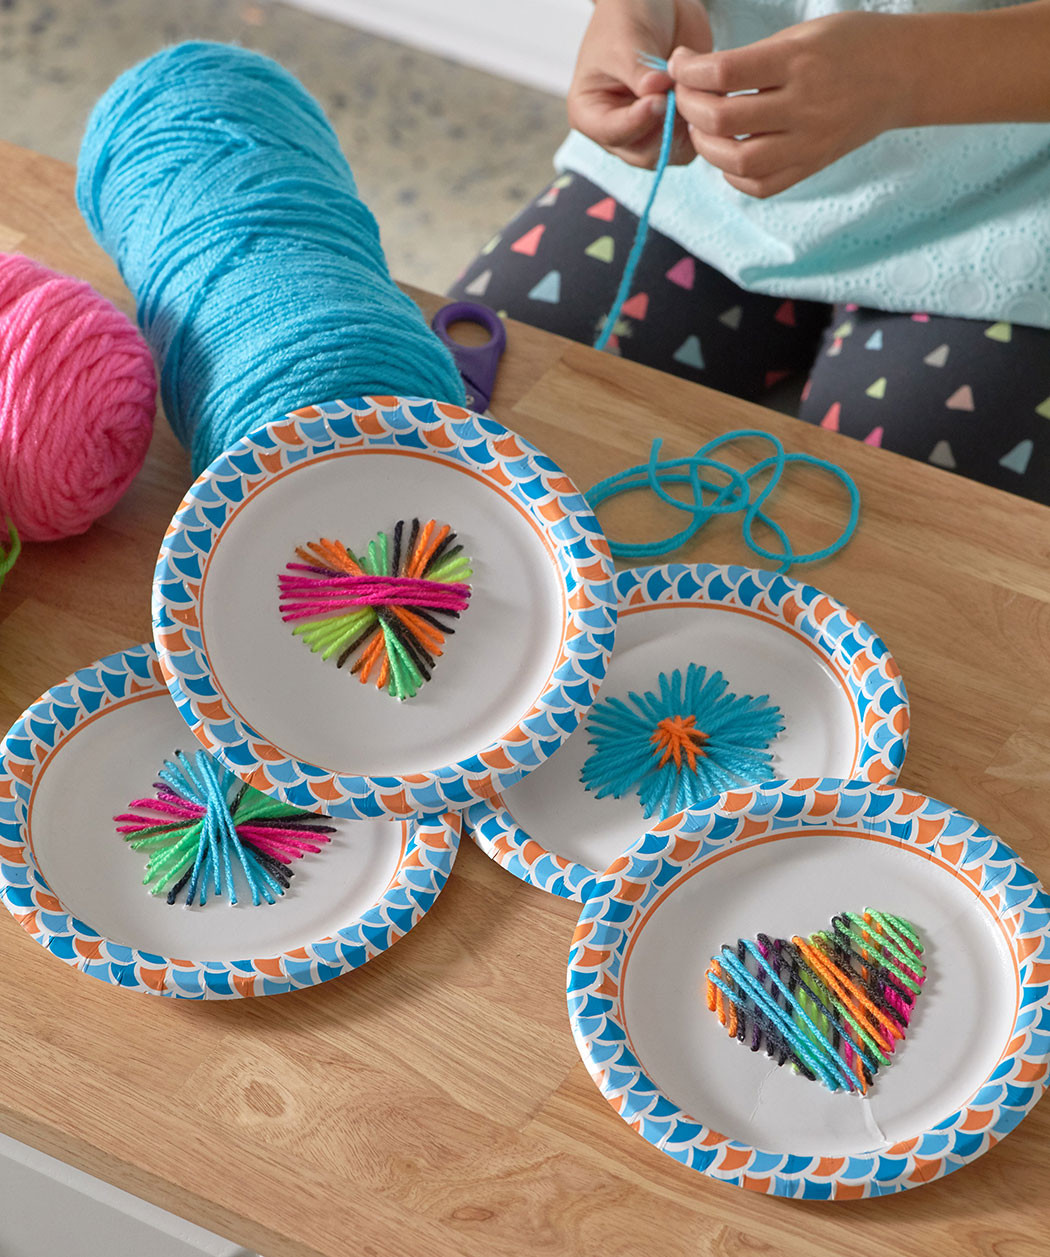 Best ideas about Kids Craft Ideas . Save or Pin 18 Cool Kids Crafts Ideas Now.